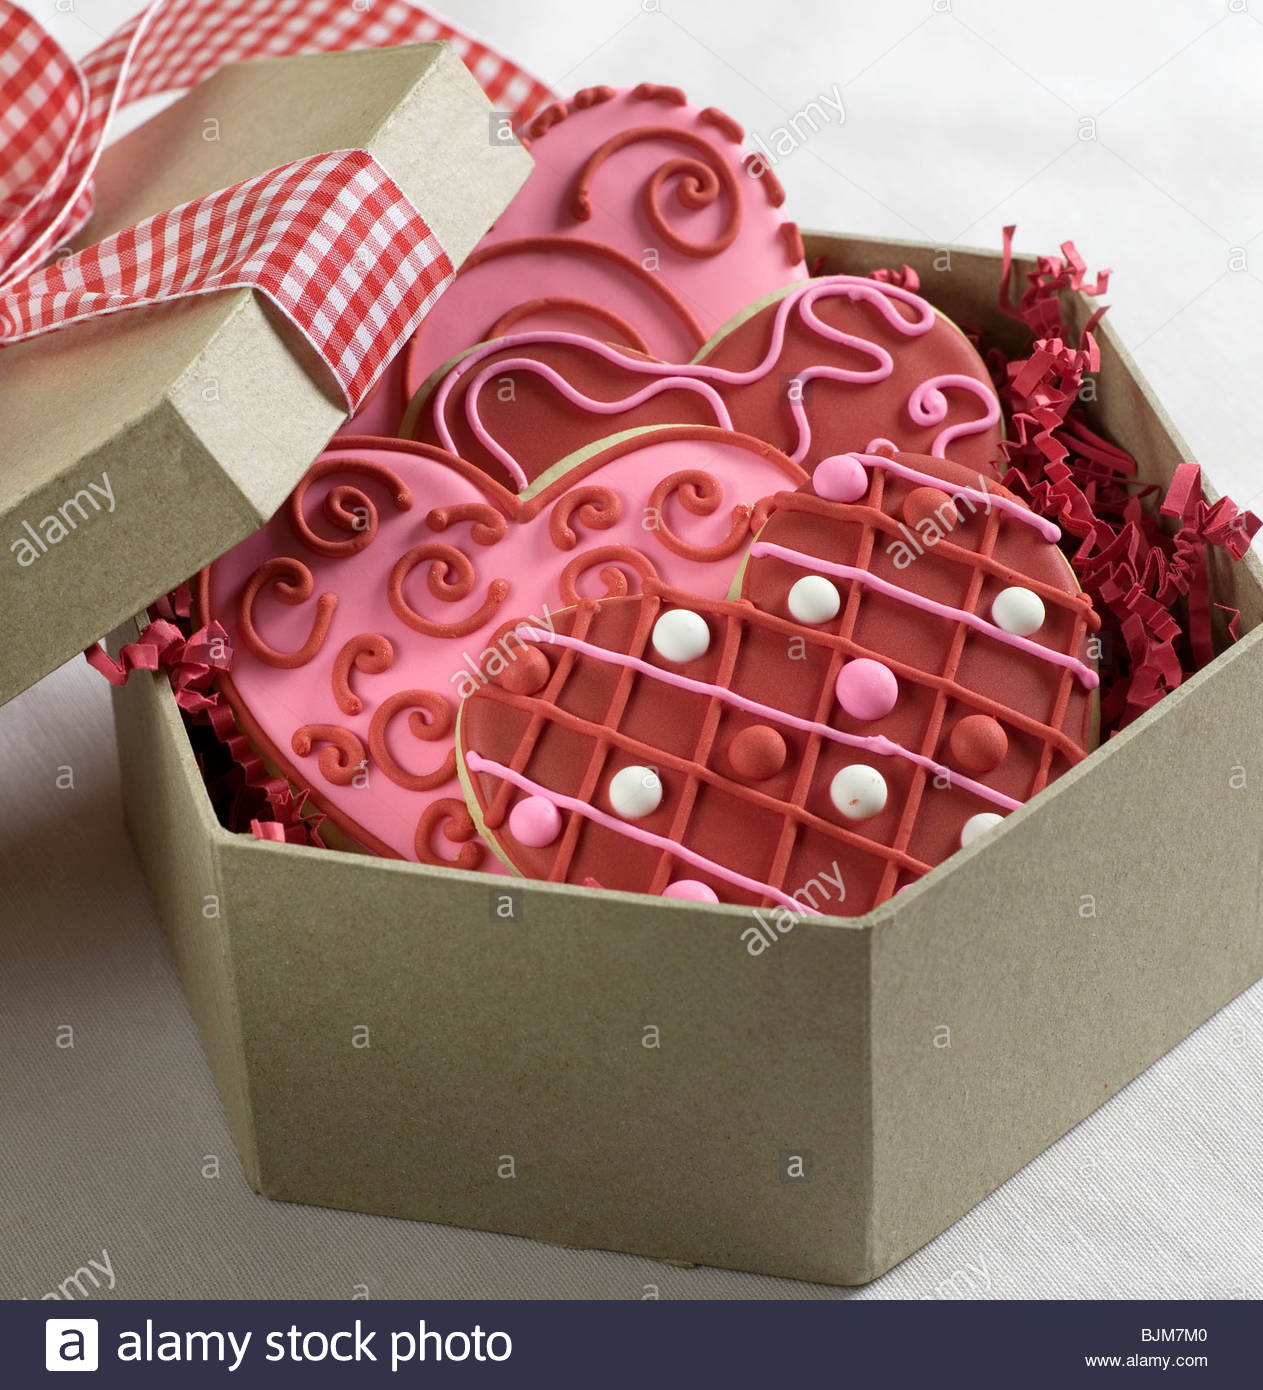 Heart Shaped Cookies for Valentineu0027s Day in a Gift Box & Heart Shaped Cookies for Valentineu0027s Day in a Gift Box Stock Photo ... Aboutintivar.Com